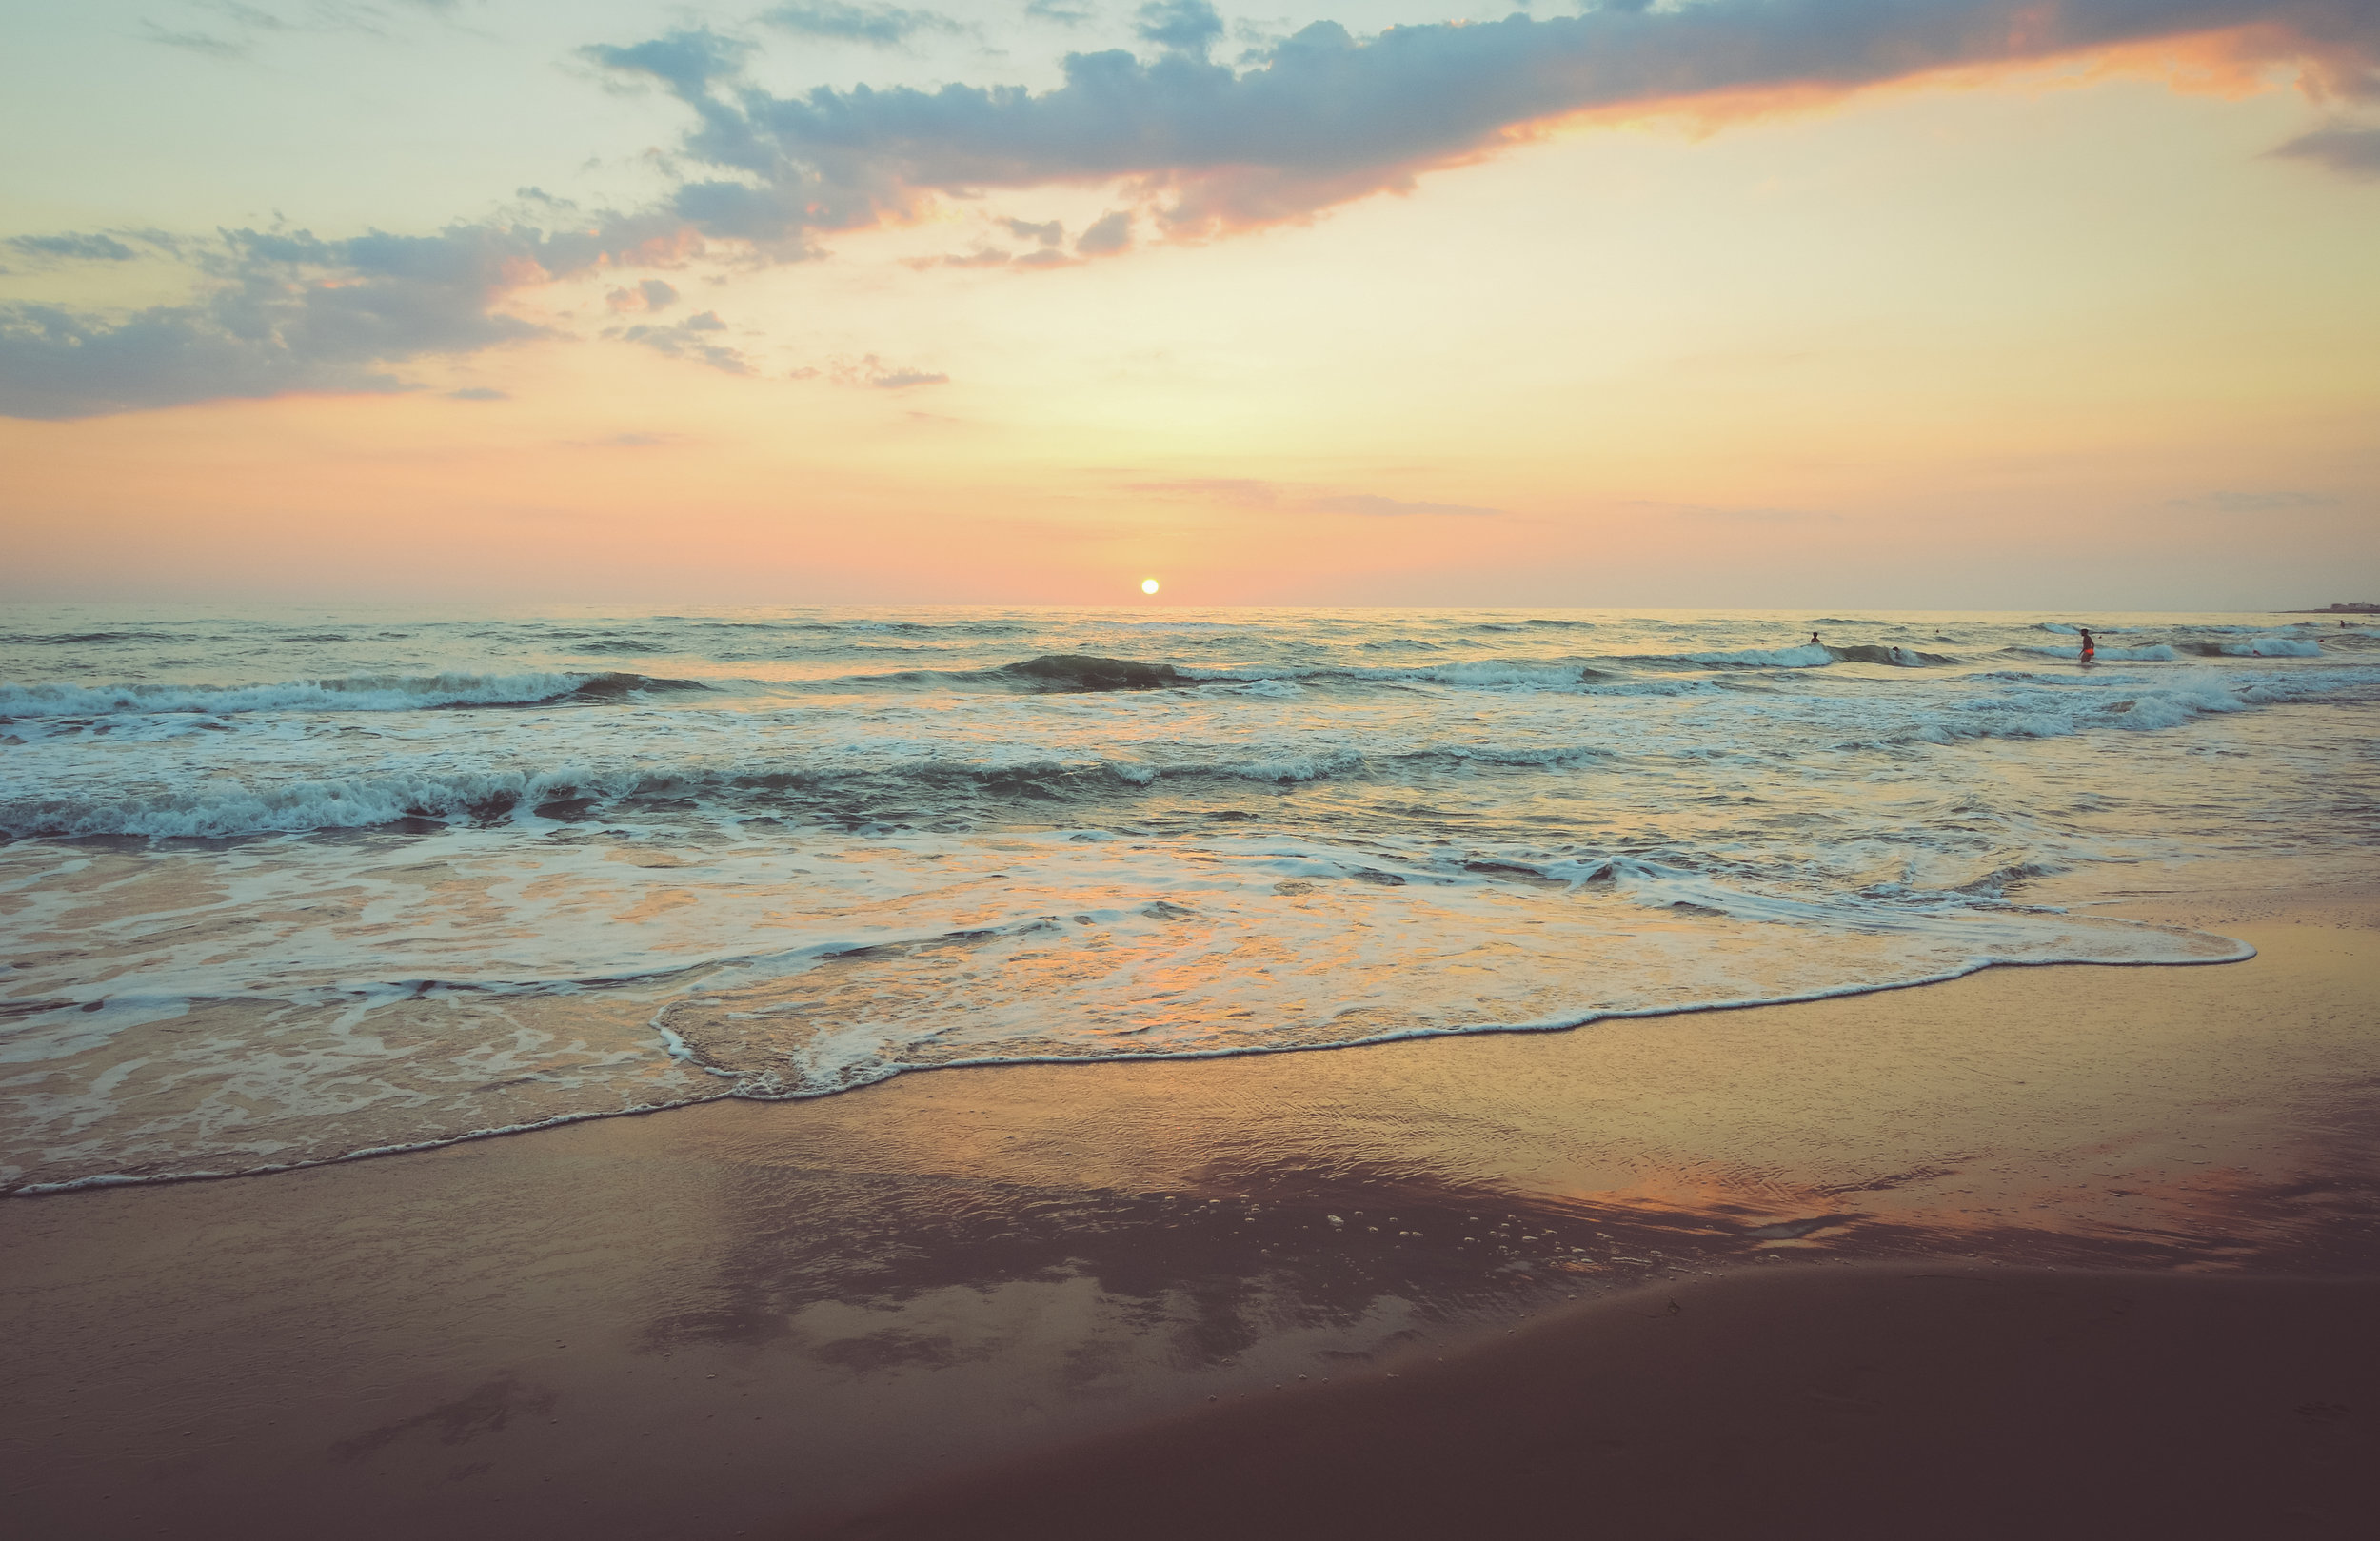 Sky Above, Sand Below, Peace Within -